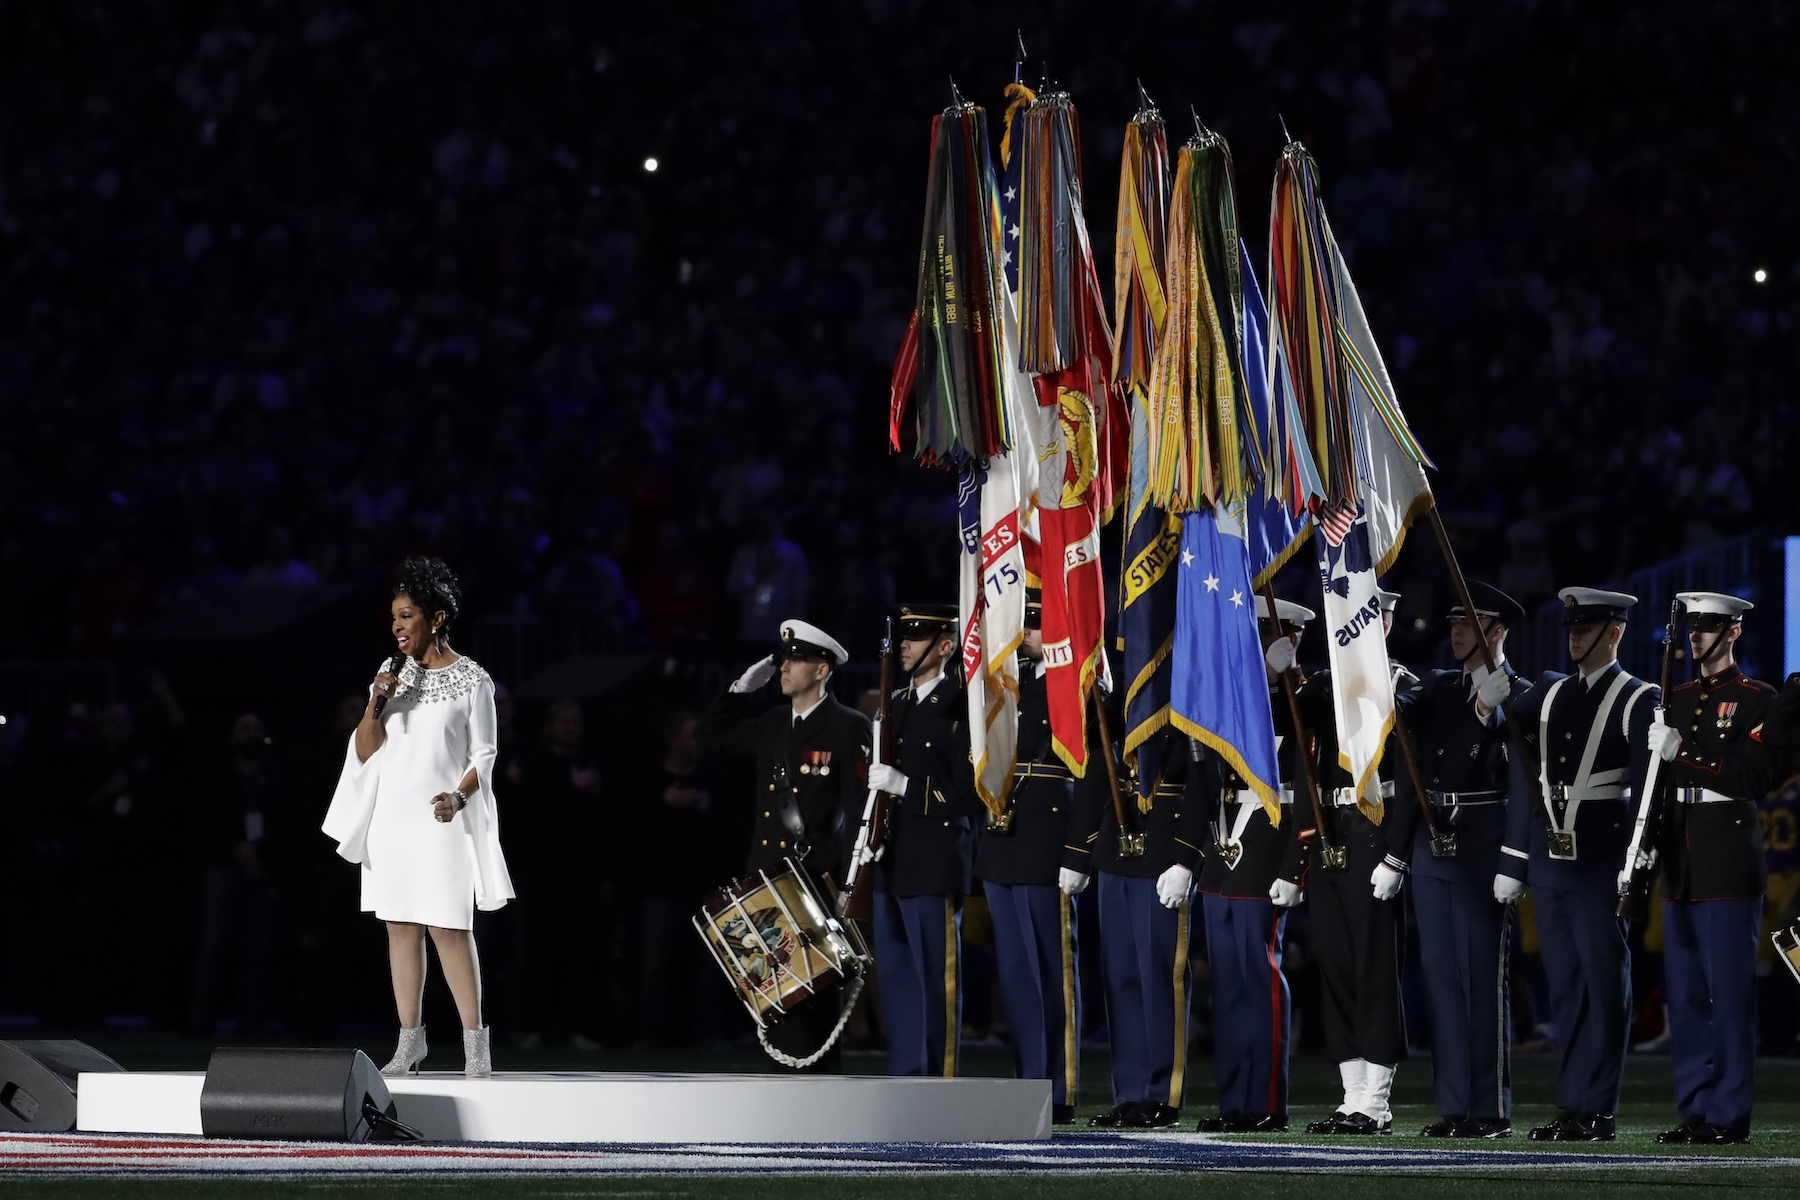 """<div class=""""meta image-caption""""><div class=""""origin-logo origin-image ap""""><span>AP</span></div><span class=""""caption-text"""">Gladys Knight sings the national anthem, before the NFL Super Bowl 53 football game between the Los Angeles Rams and the New England Patriots Sunday, Feb. 3, 2019, in Atlanta. (AP Photo/Jeff Roberson)</span></div>"""